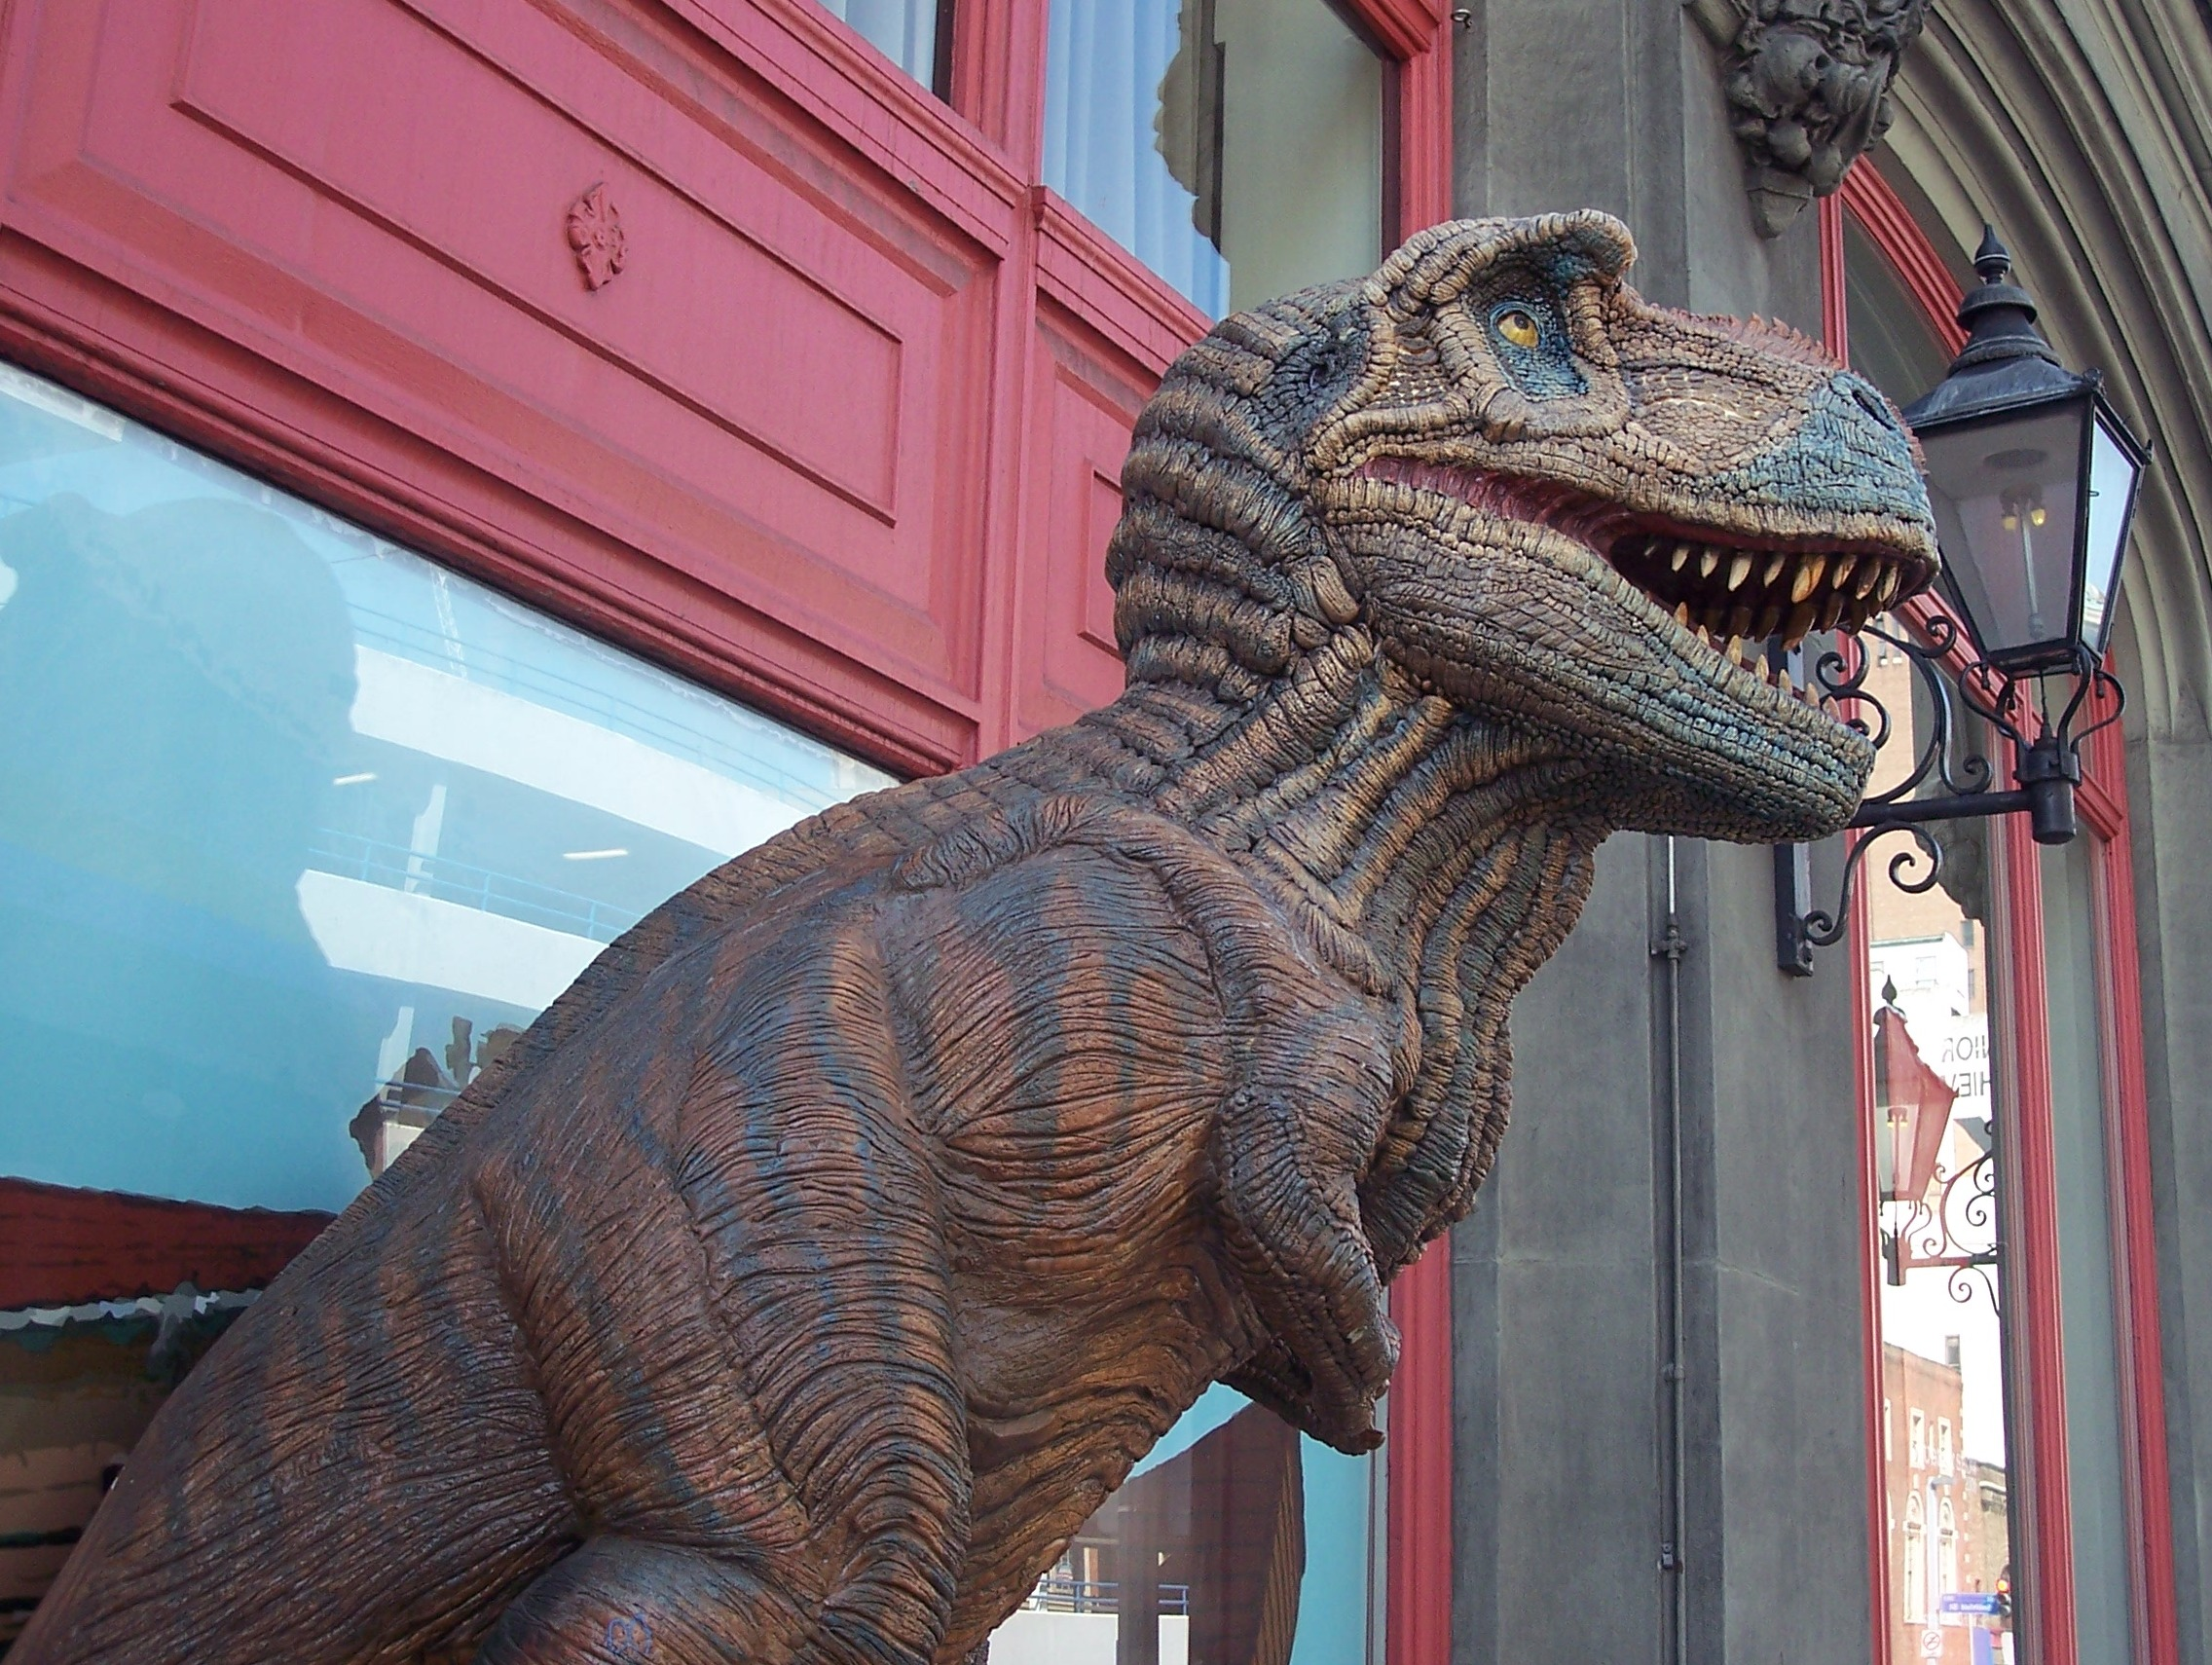 Dino in Chinatown